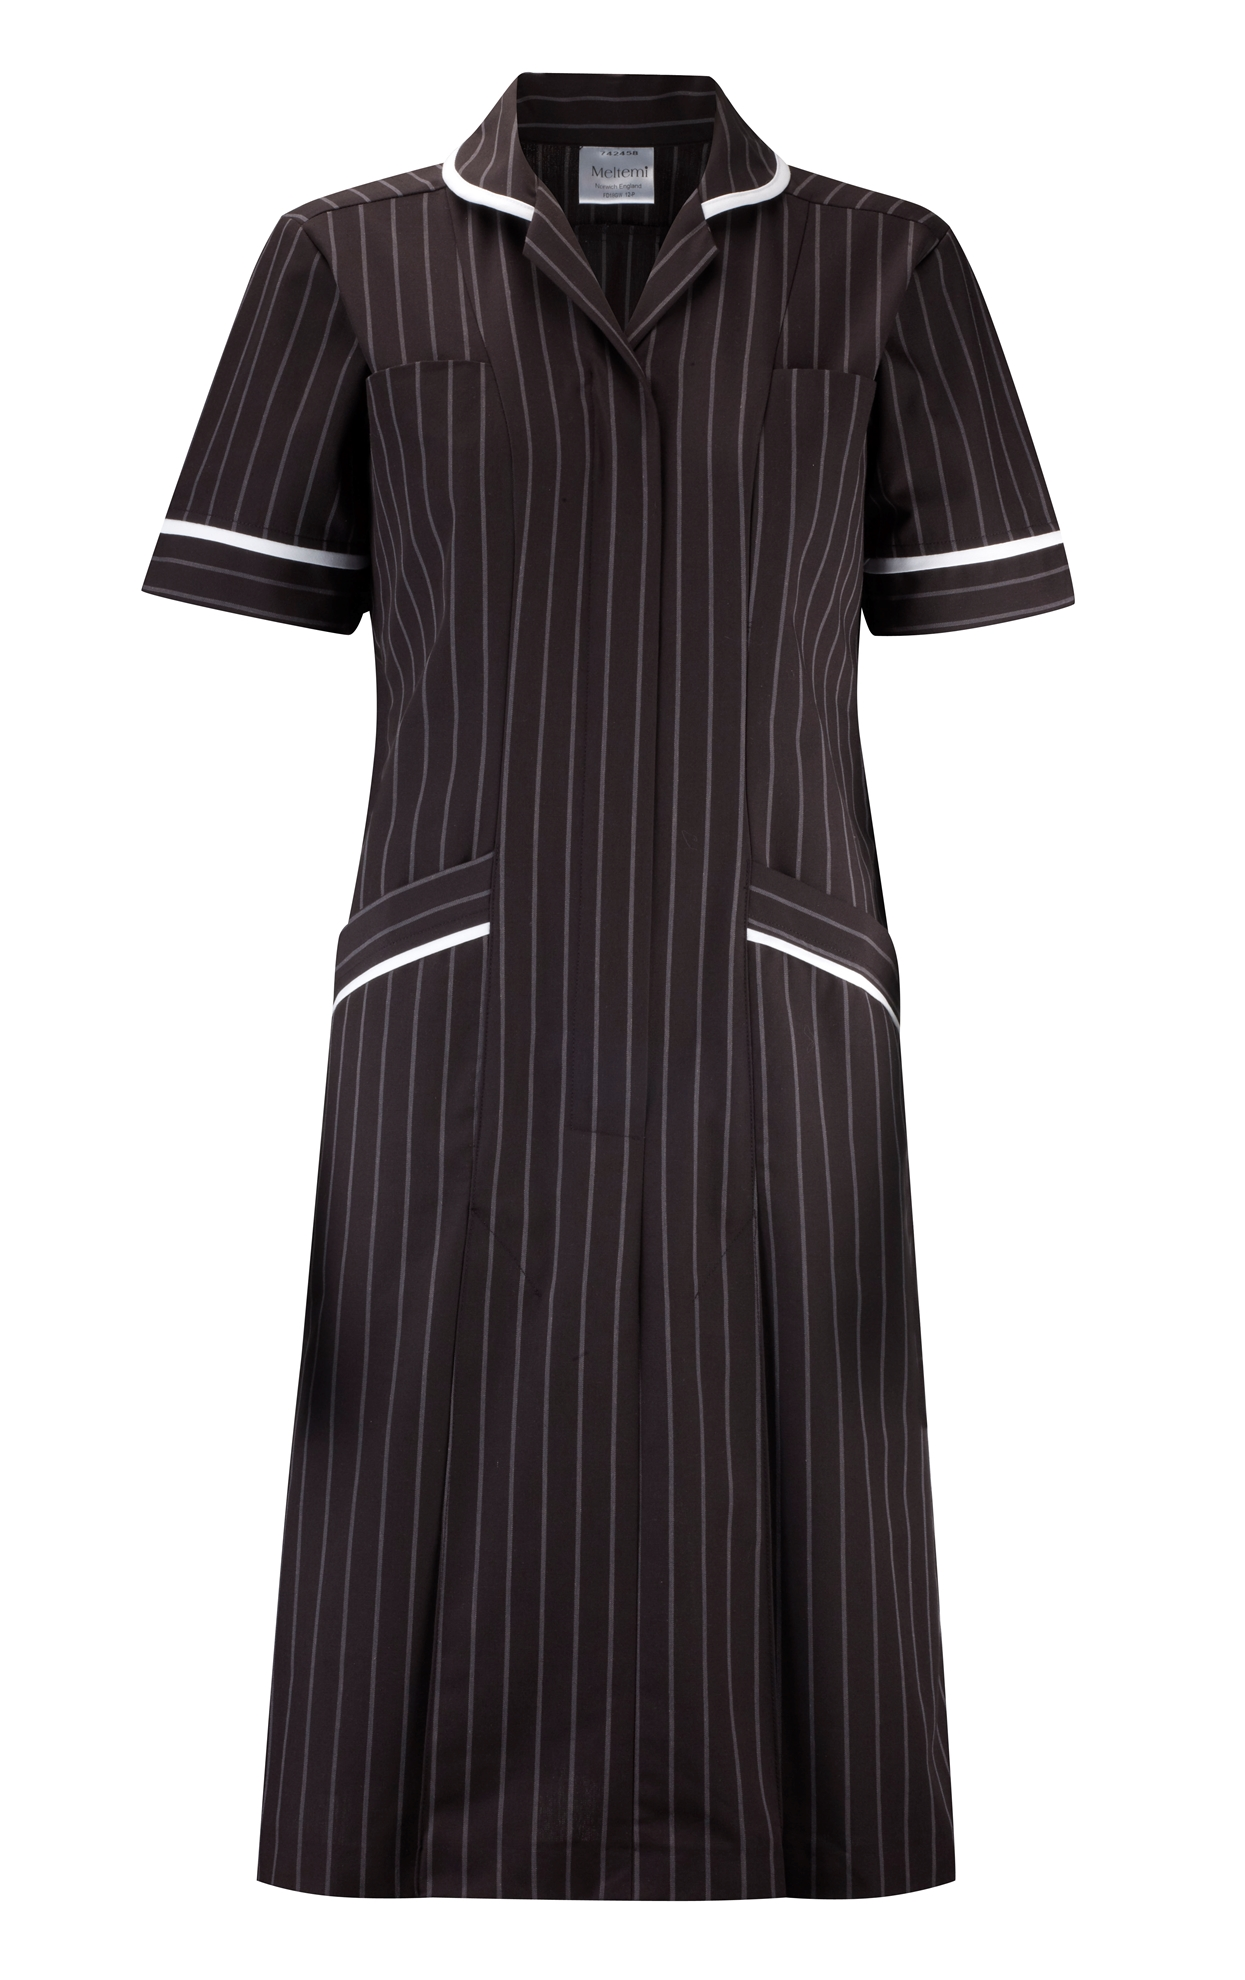 Picture of Professional Specialist Dress - Charcoal Pinstripe/White